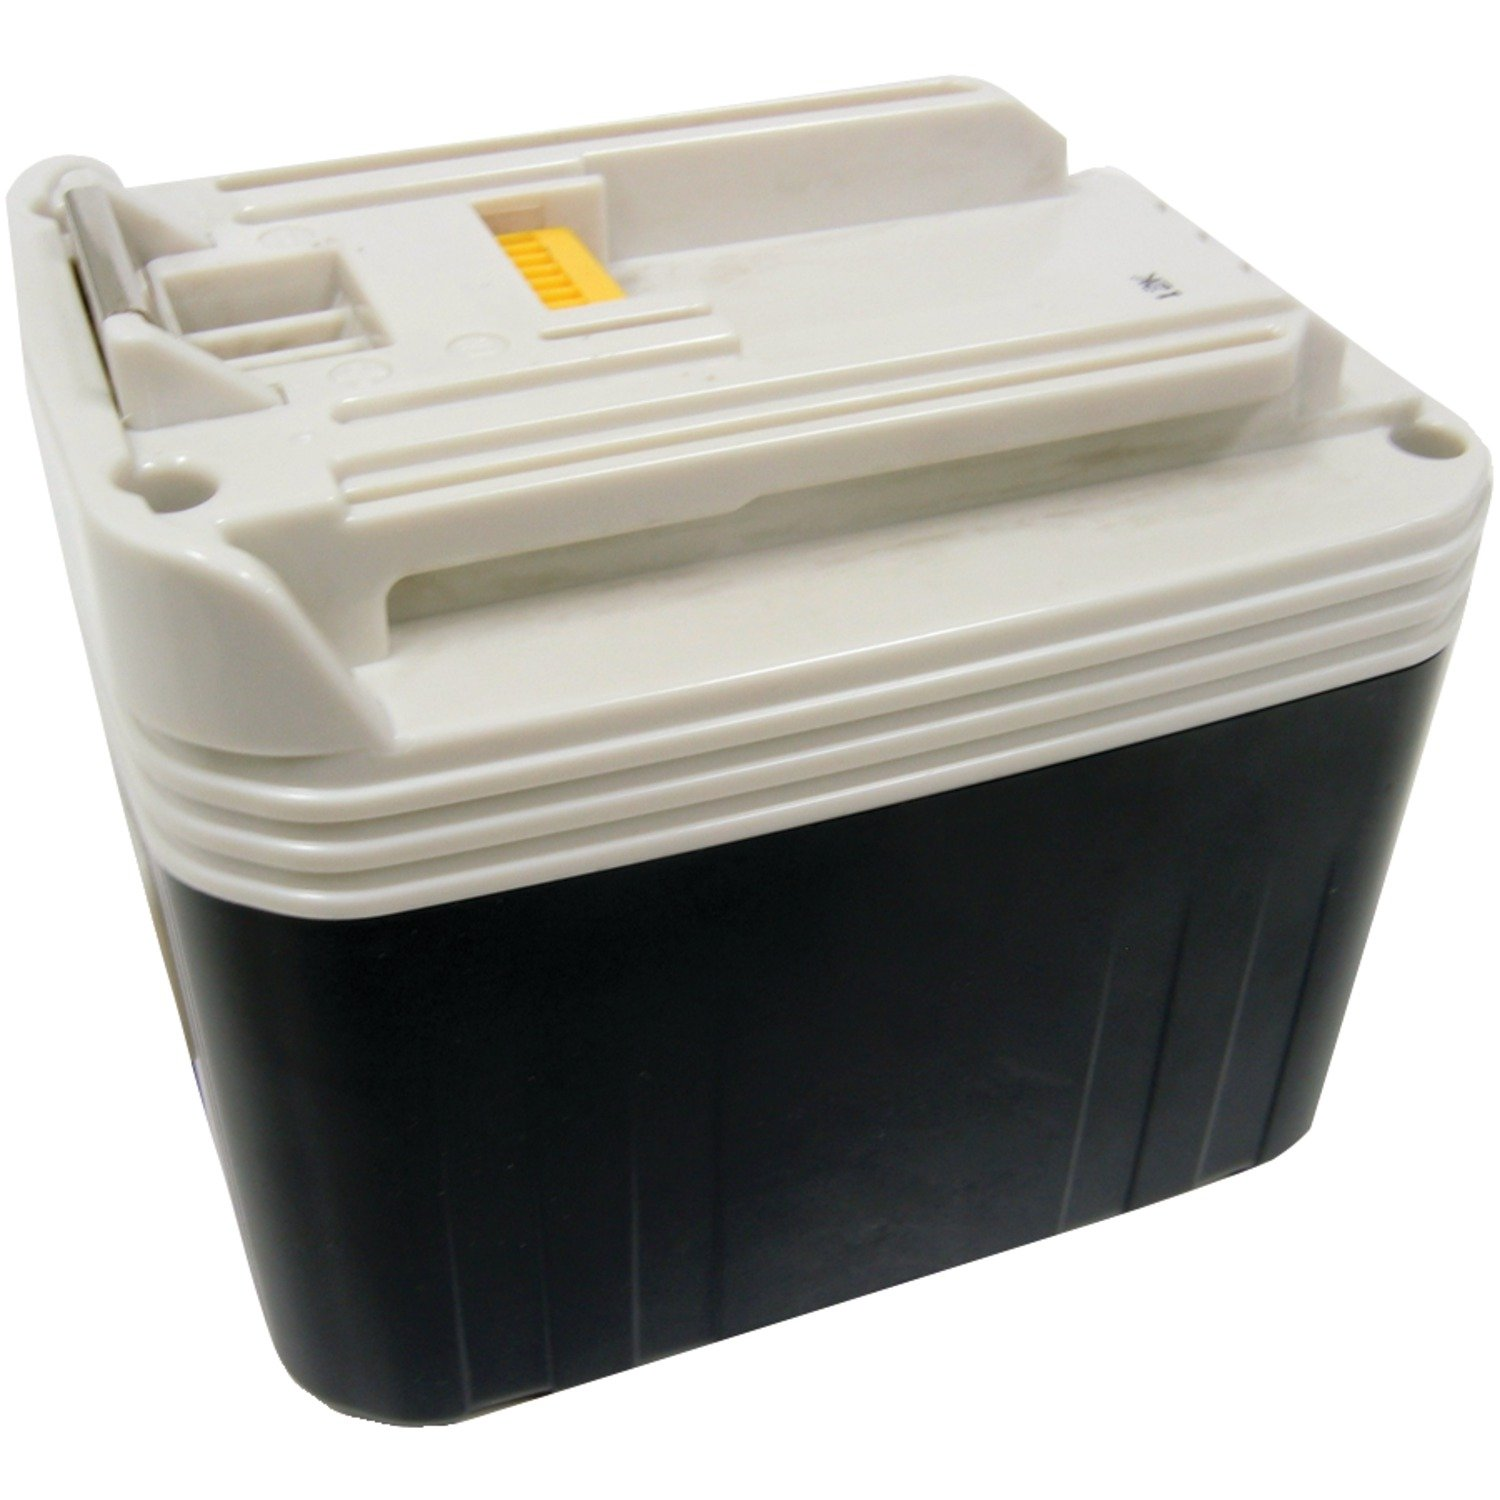 Replacement Battery for Makita works with Makita 1931274, 1931282, 1931305, 1931313, 1937369, 1937377, 1937393 by Lenmar